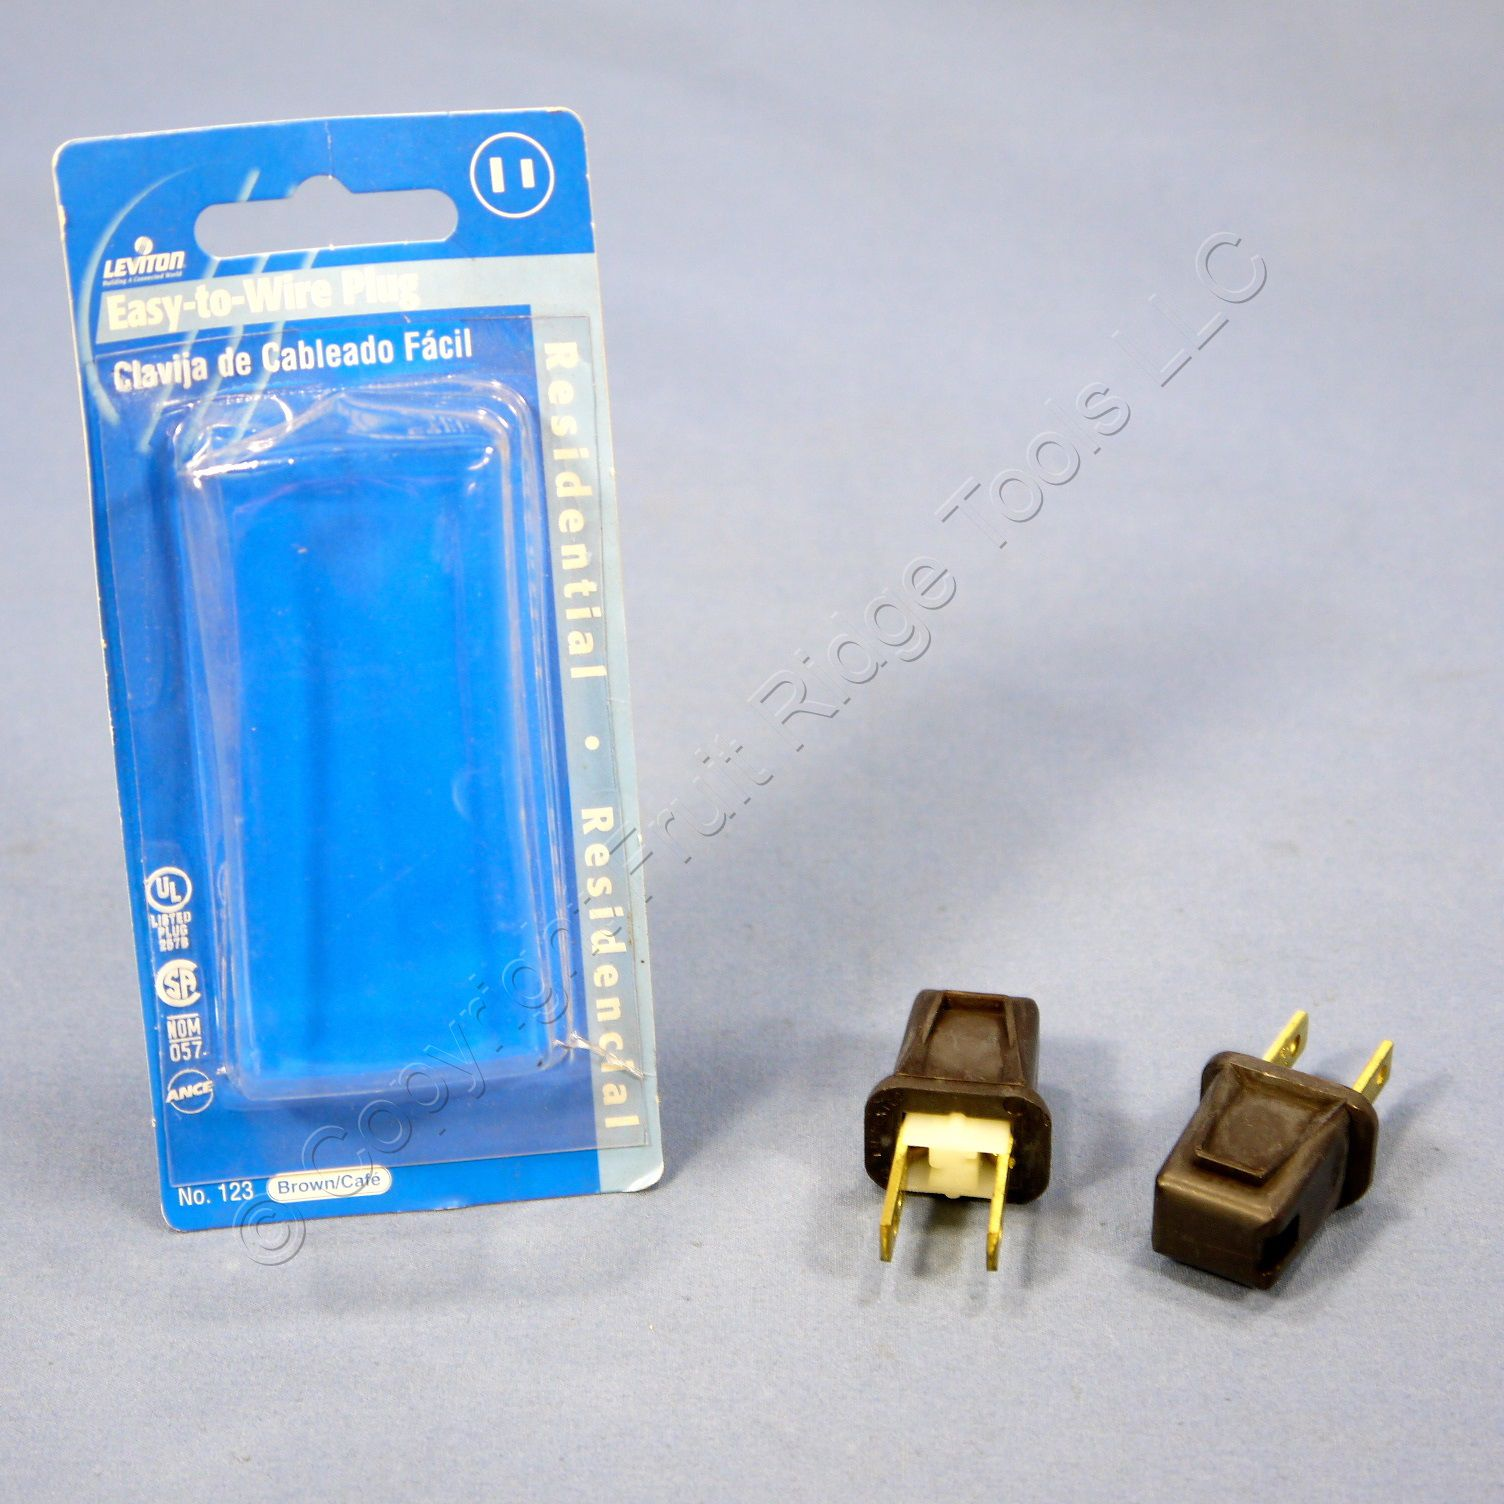 2 Leviton Brown 1-15 Straight Blade Plugs 2-Prong NEMA 1-15P Non-Polarized 10A 125V 123